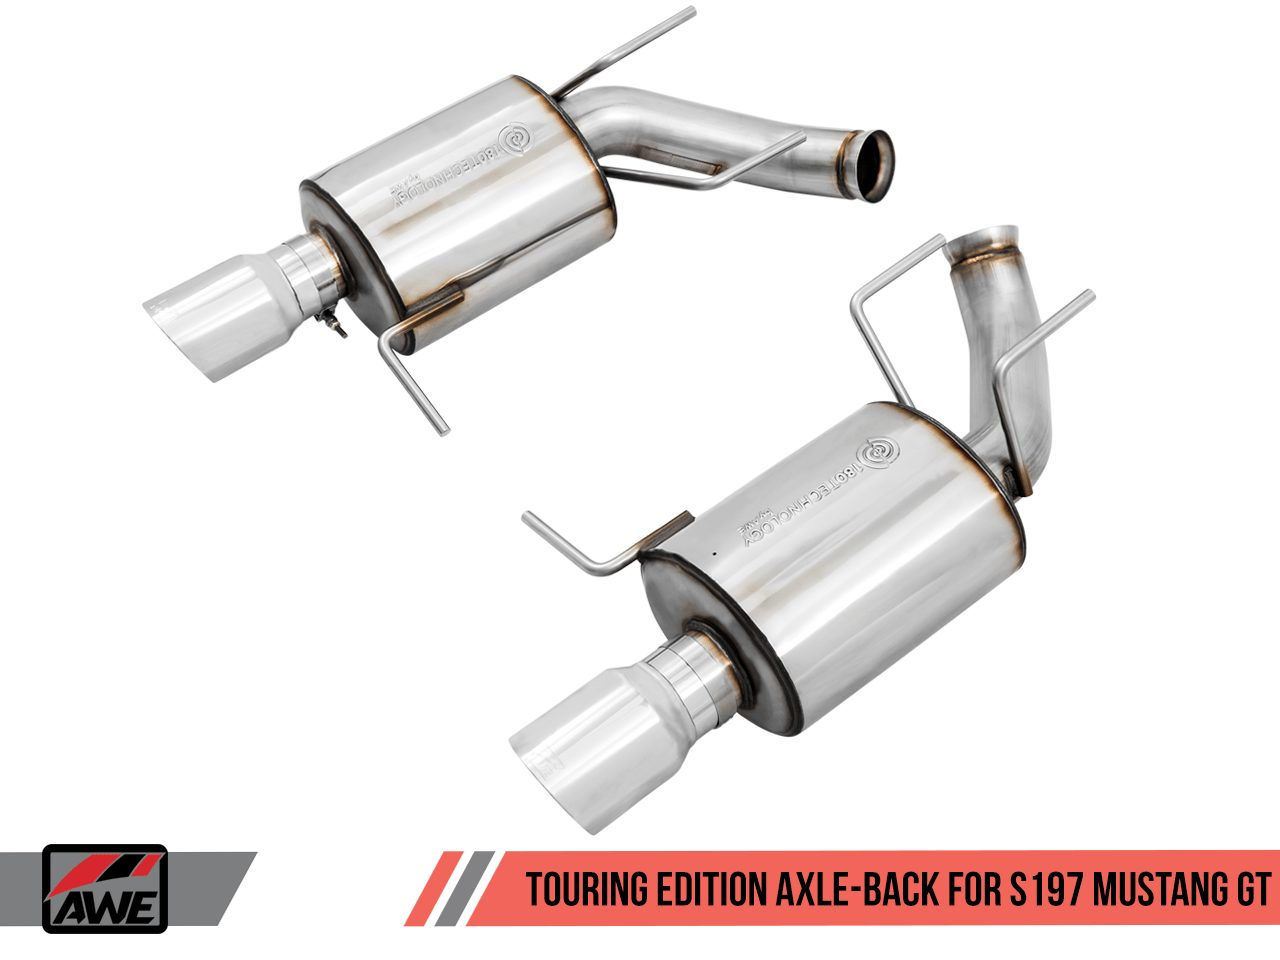 awe touring axle back exhaust s197 mustang